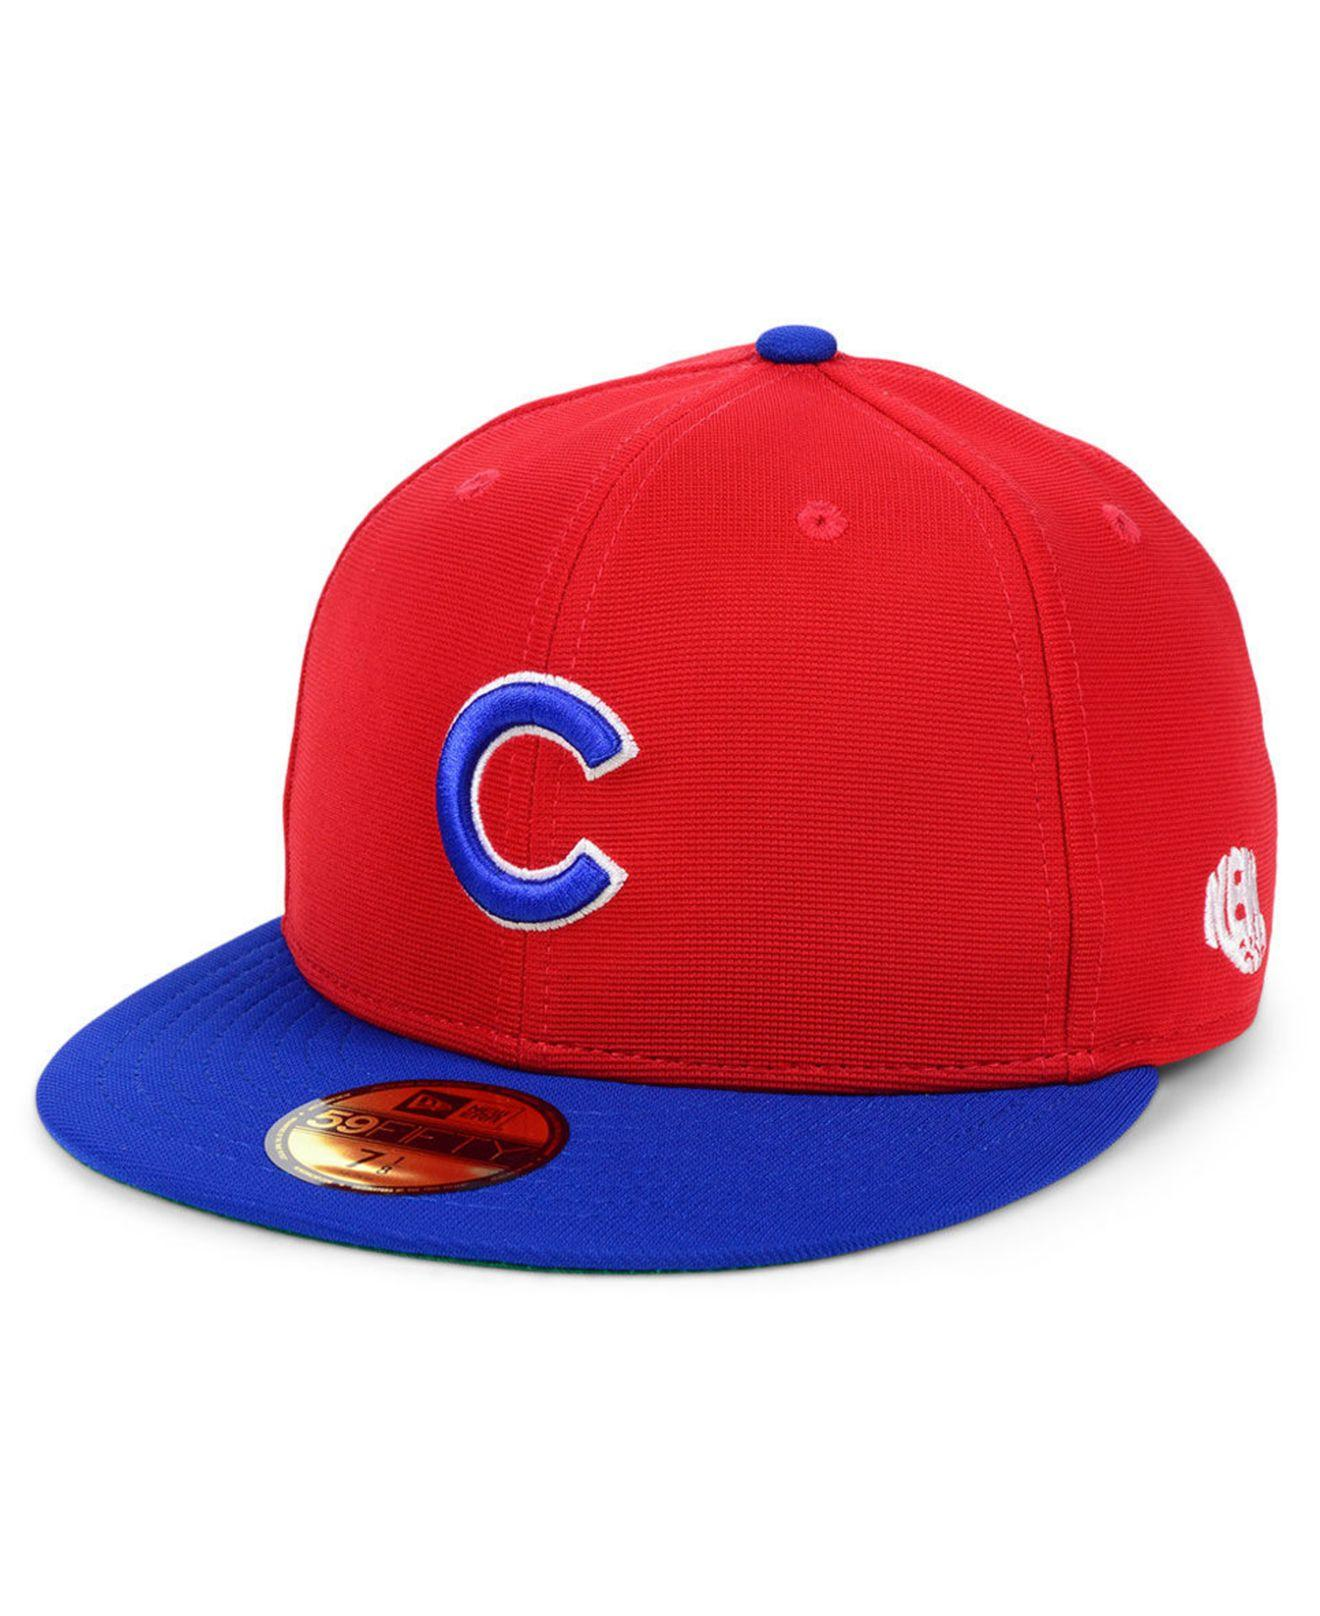 purchase cheap 449b0 f854a KTZ. Men s Red Chicago Cubs Cooperstown Flip 59fifty Fitted Cap